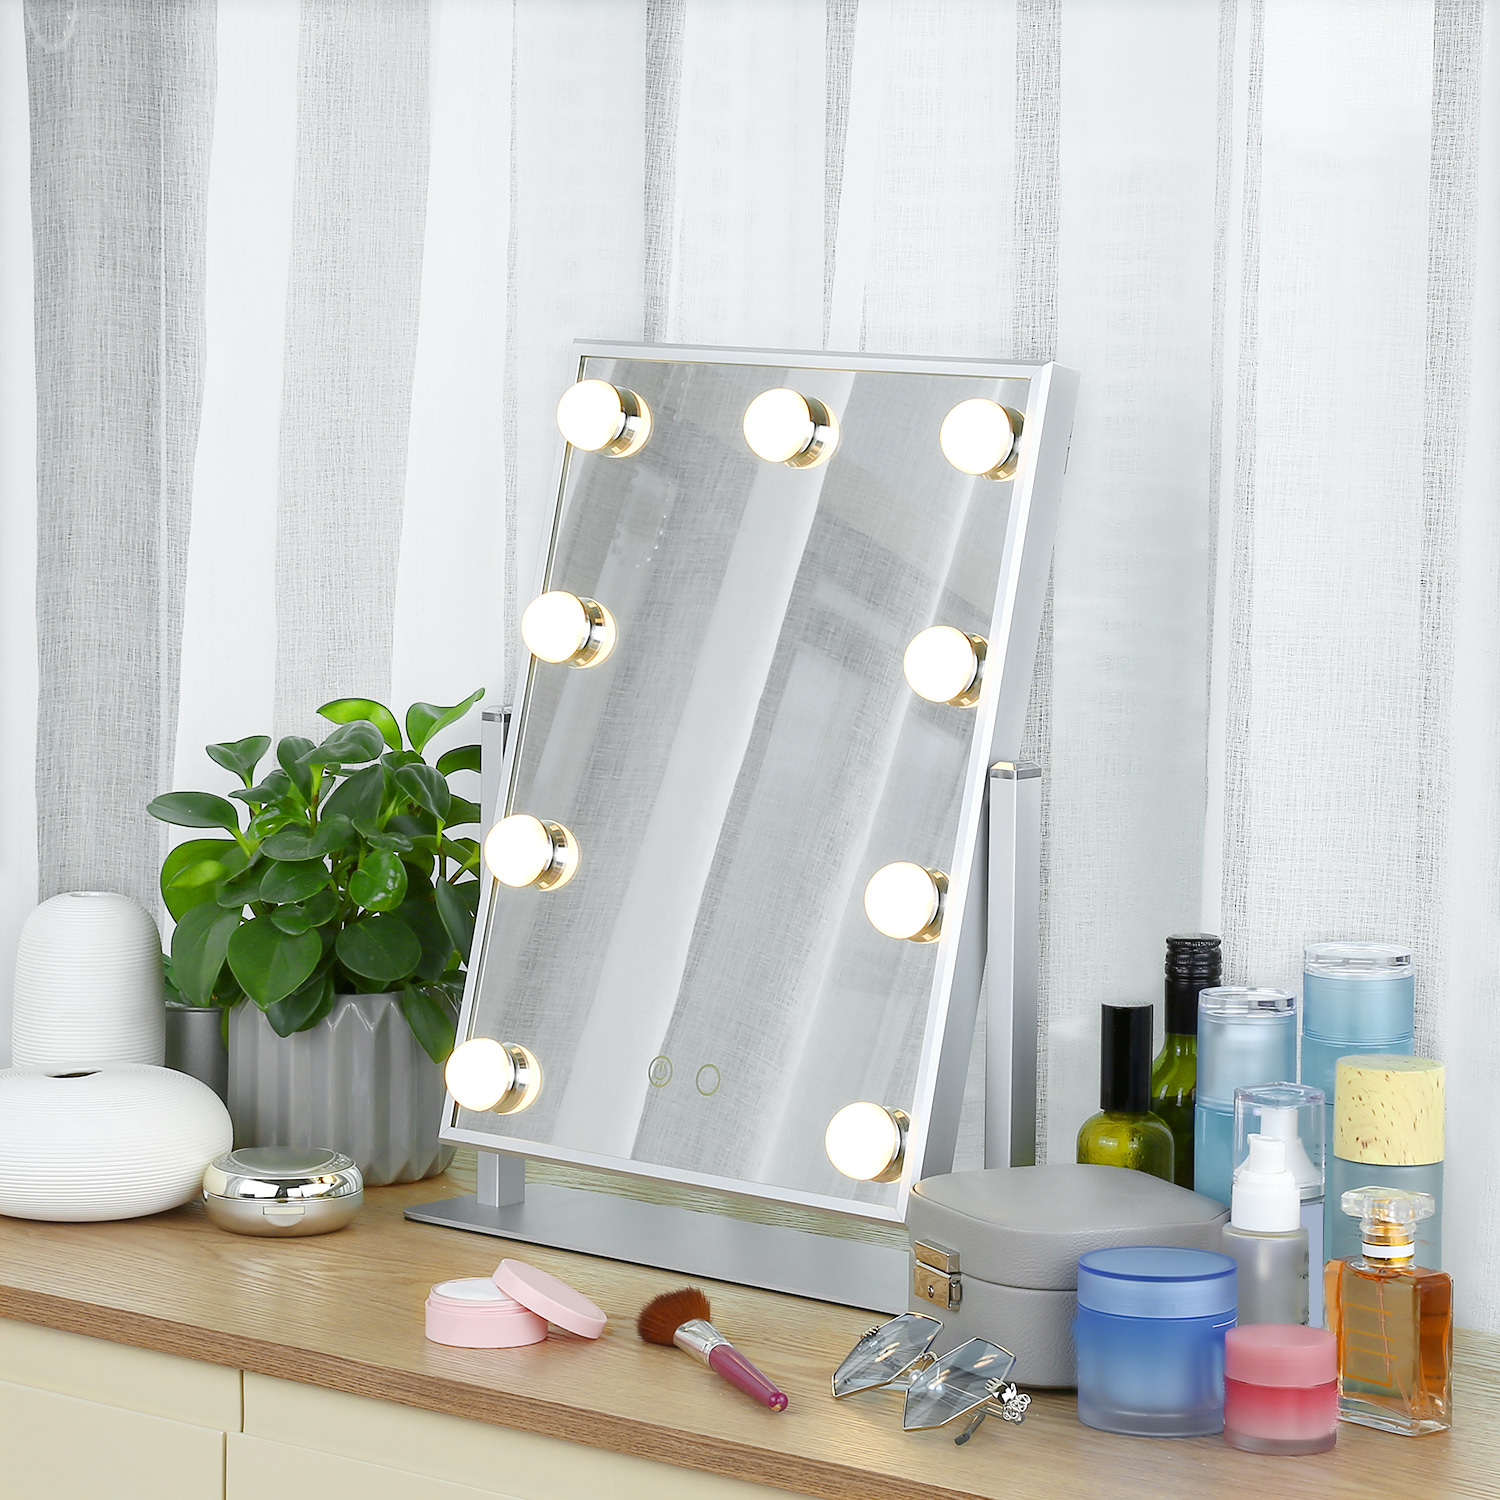 2019 New Lighted Vanity Makeup Mirror Tabletop Dimmable 9 ...